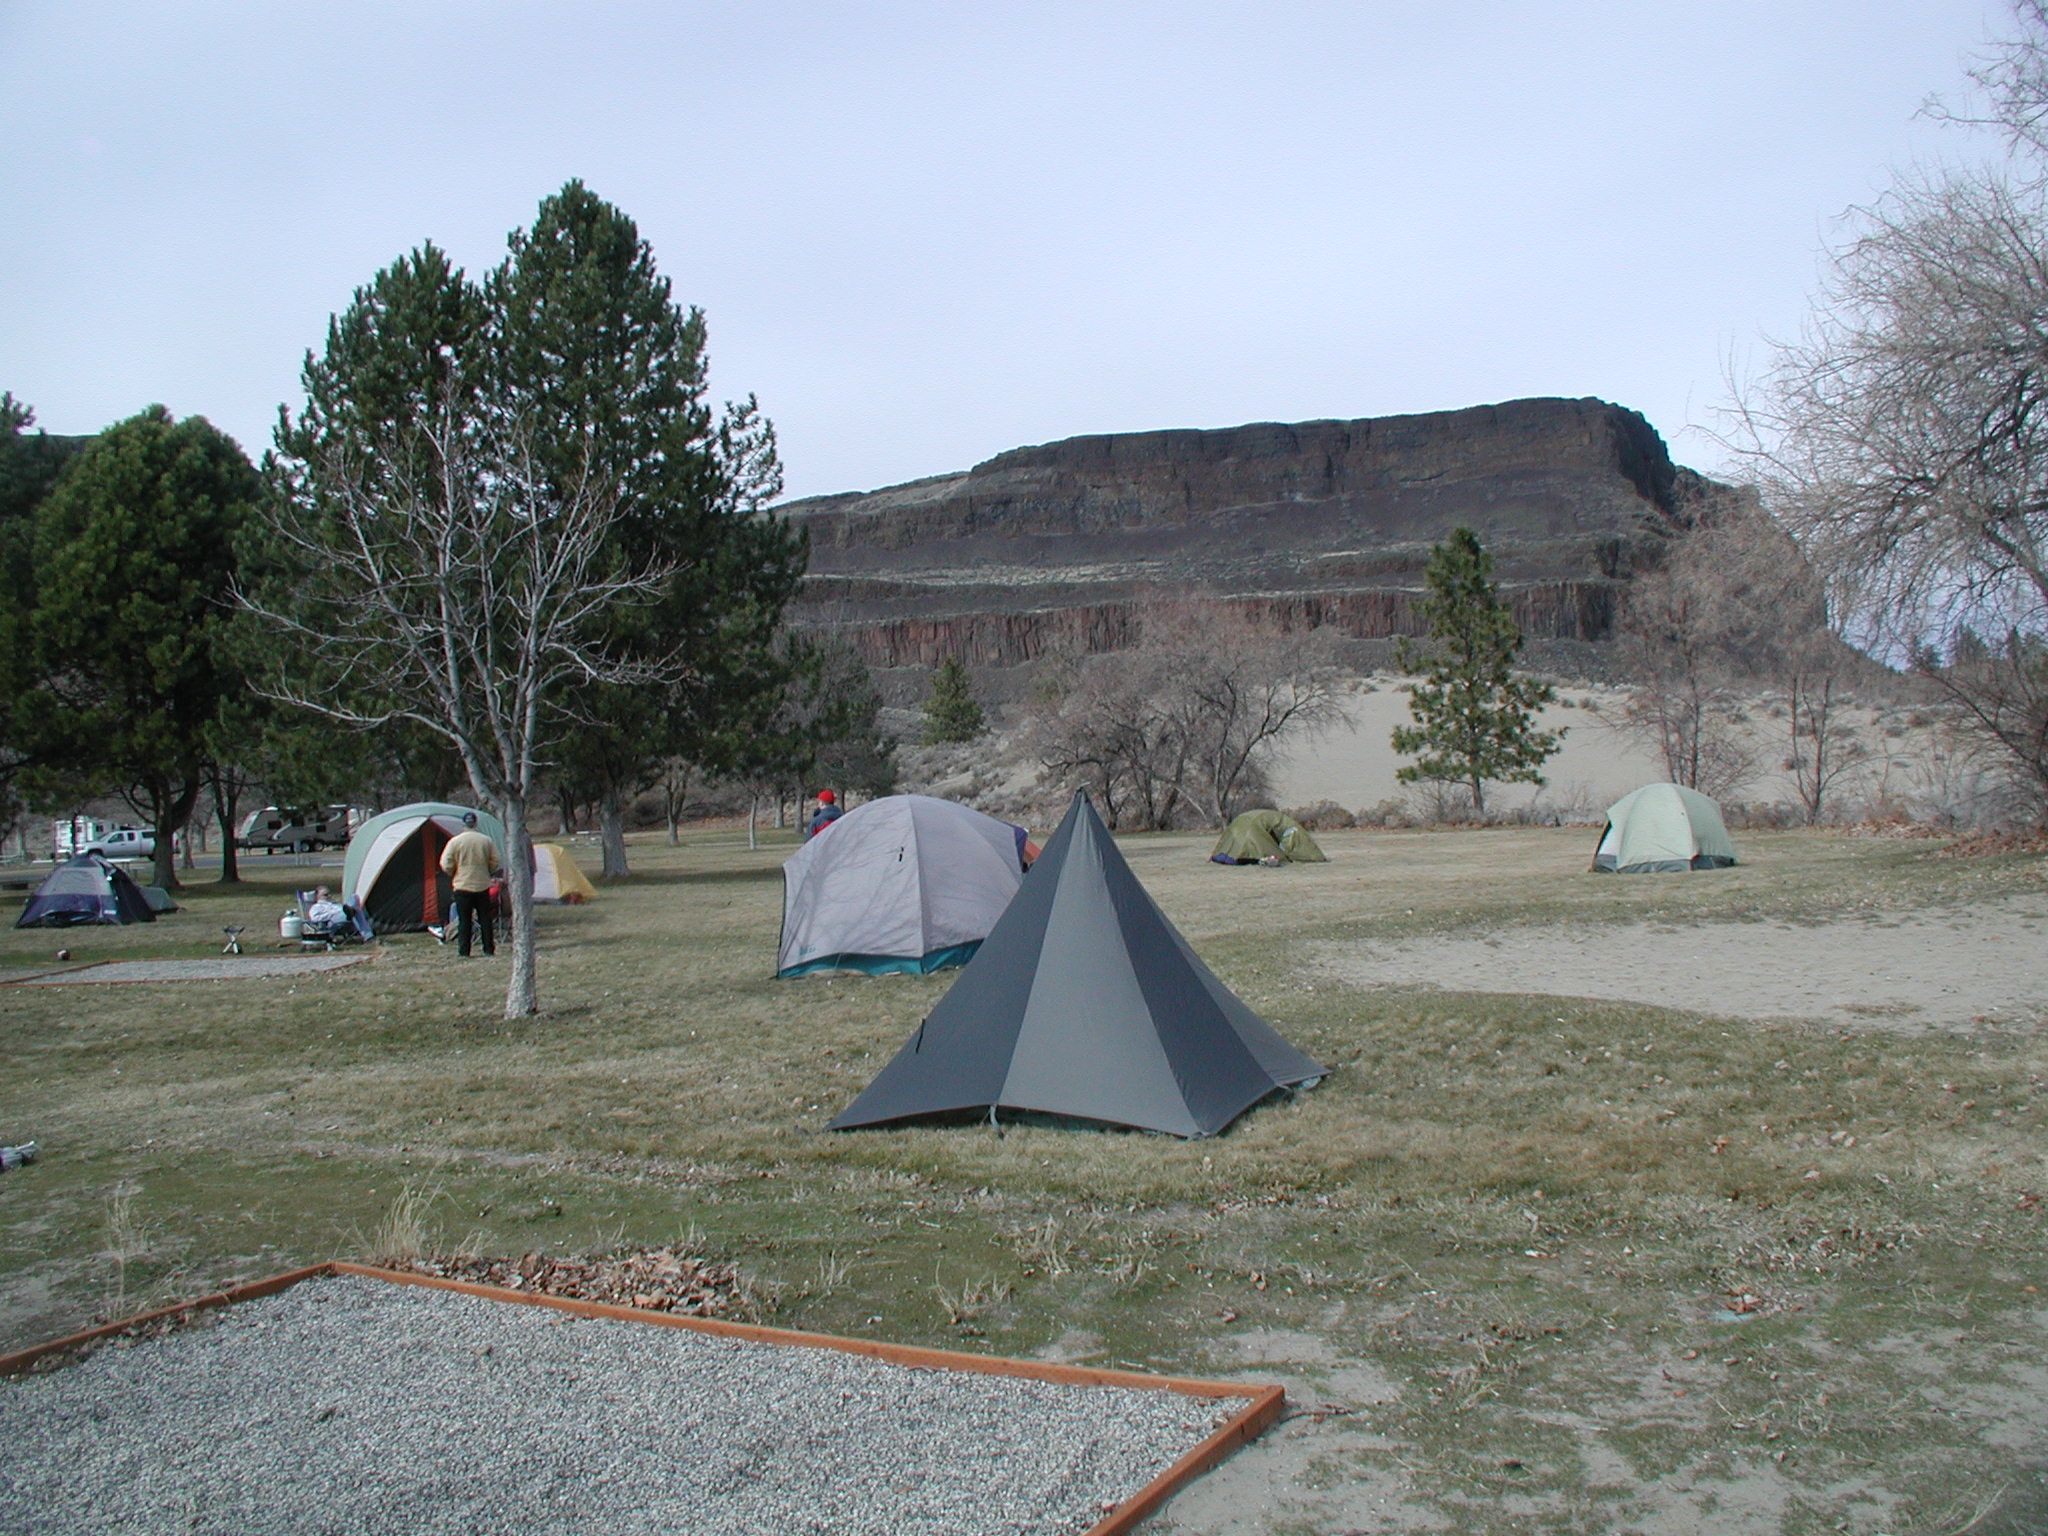 steamboat rock dating site Steamboat rock campground in steamboat rock, washington | steamboat rock campground's got 26 tent spaces, 136 utility sites (full hook-up) and 3 cabins—a little something even.